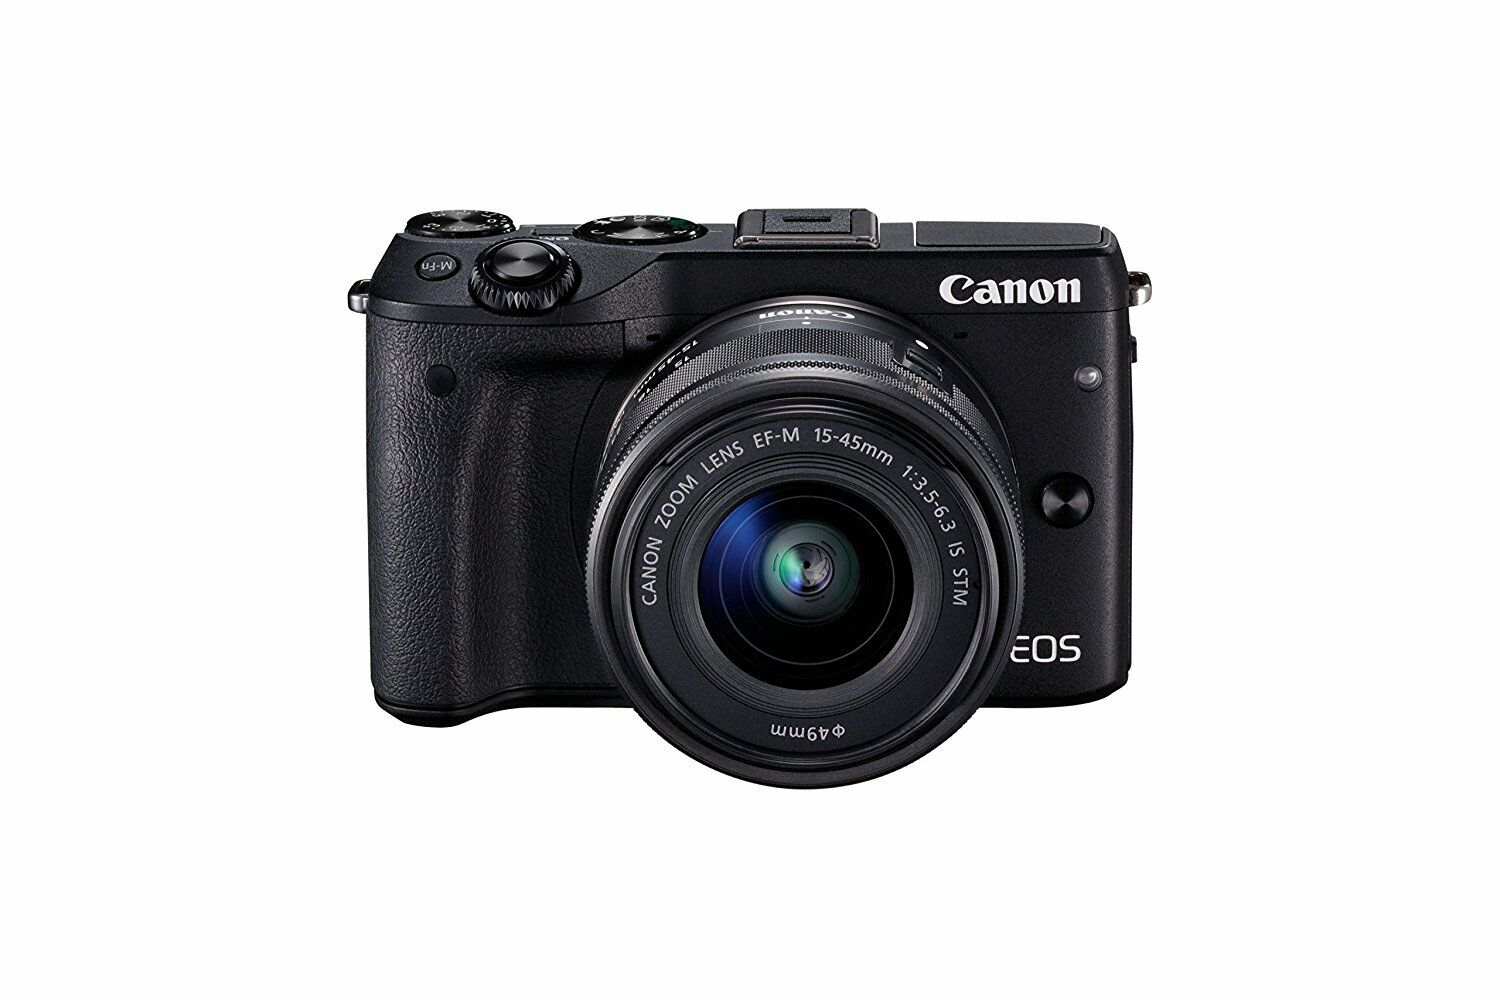 Canon Eos M3 Compact System Camera Ef M 15 45 Mm F 35 63 Is Stm M10 Kit 22mm 1 Of 1free Shipping